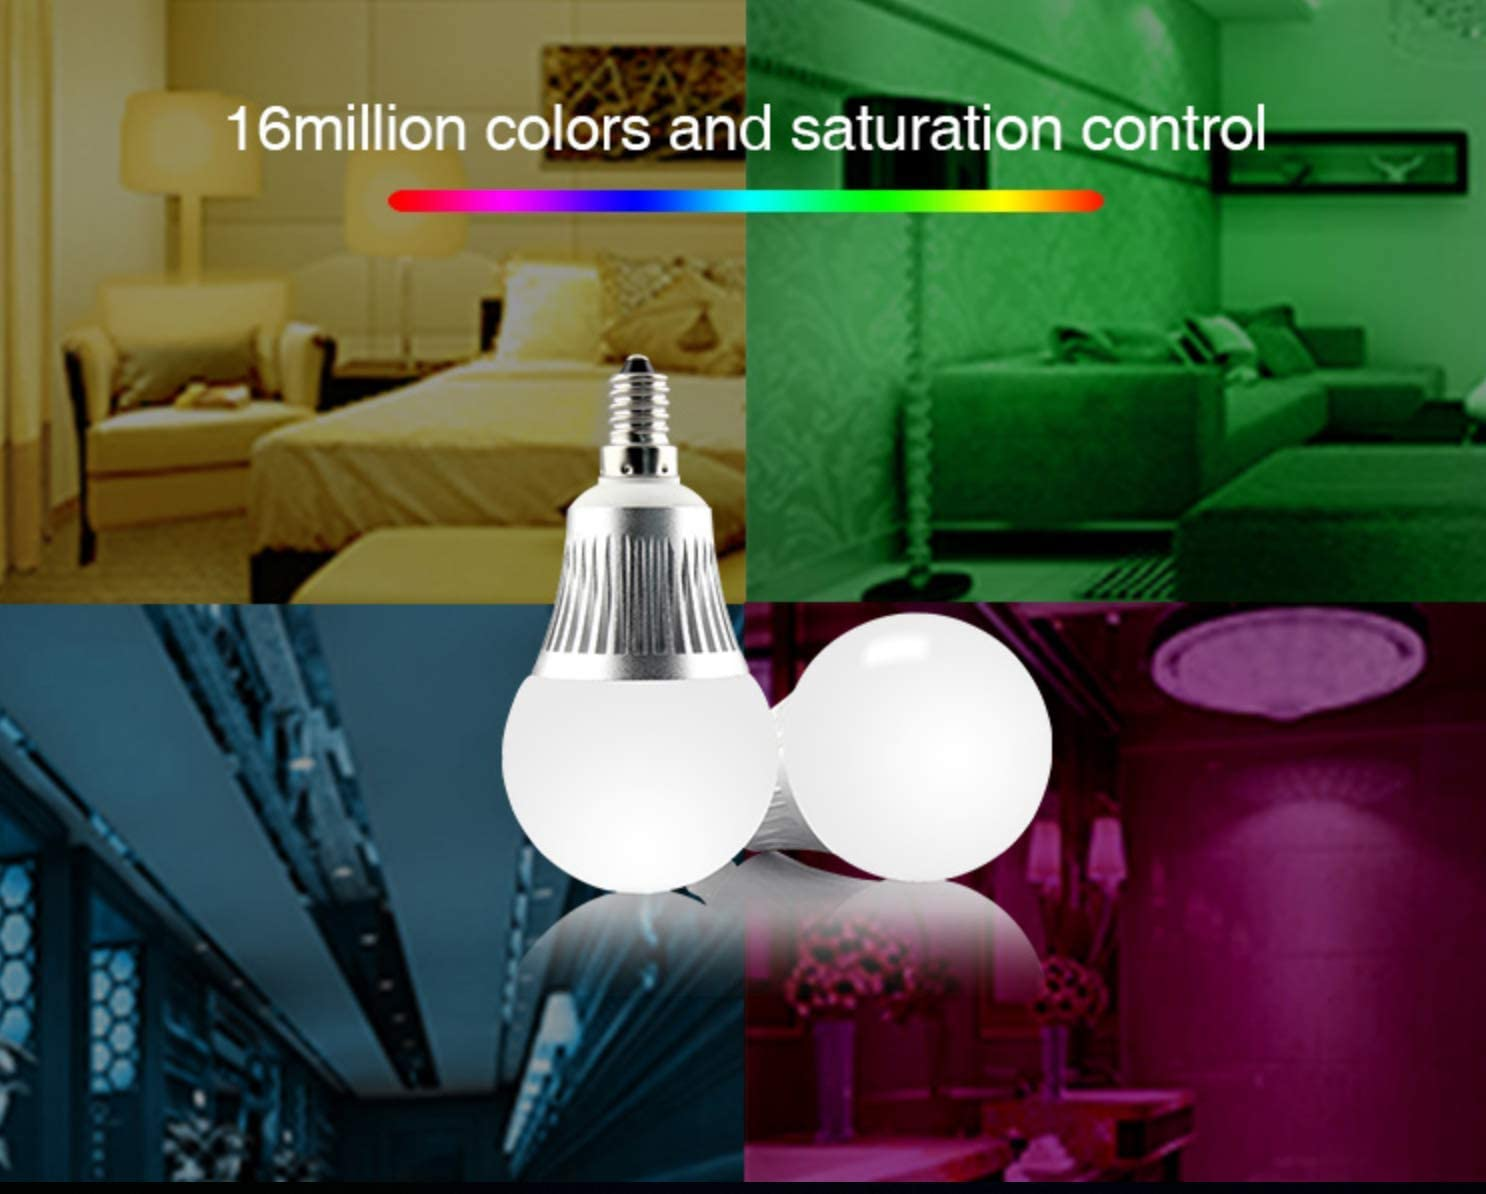 Renewed Mi Light 5W E14 RGB Color Changing WiFi LED Lamp Warm White Dimmable 5W RGBW